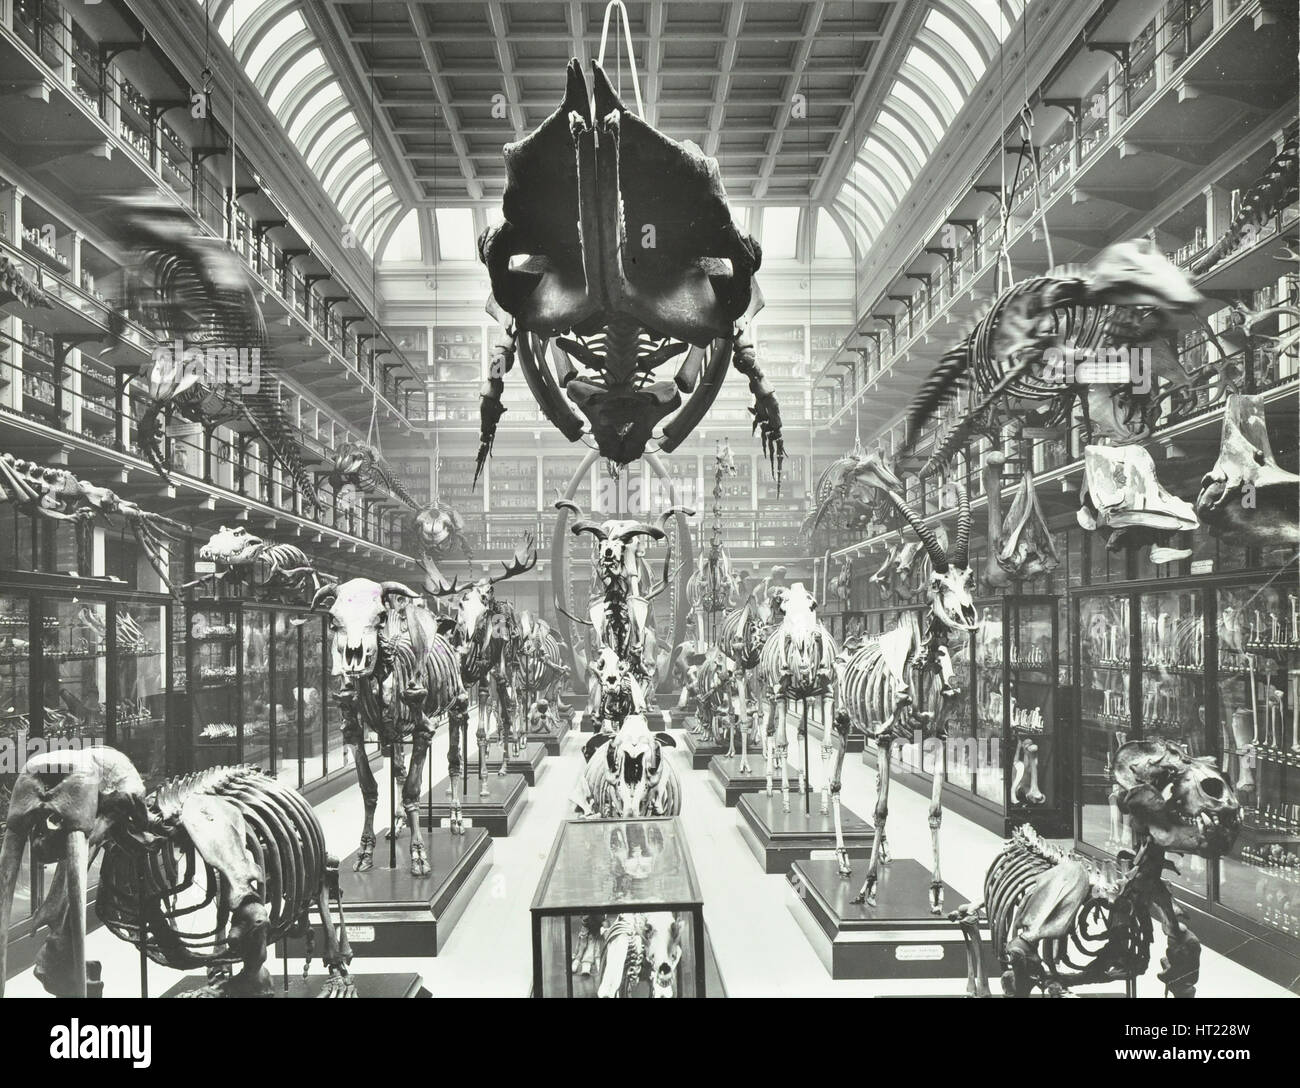 Animal skeletons at the Royal College of Surgeons, Westminster, London, 1911. Artist: Unknown. - Stock Image